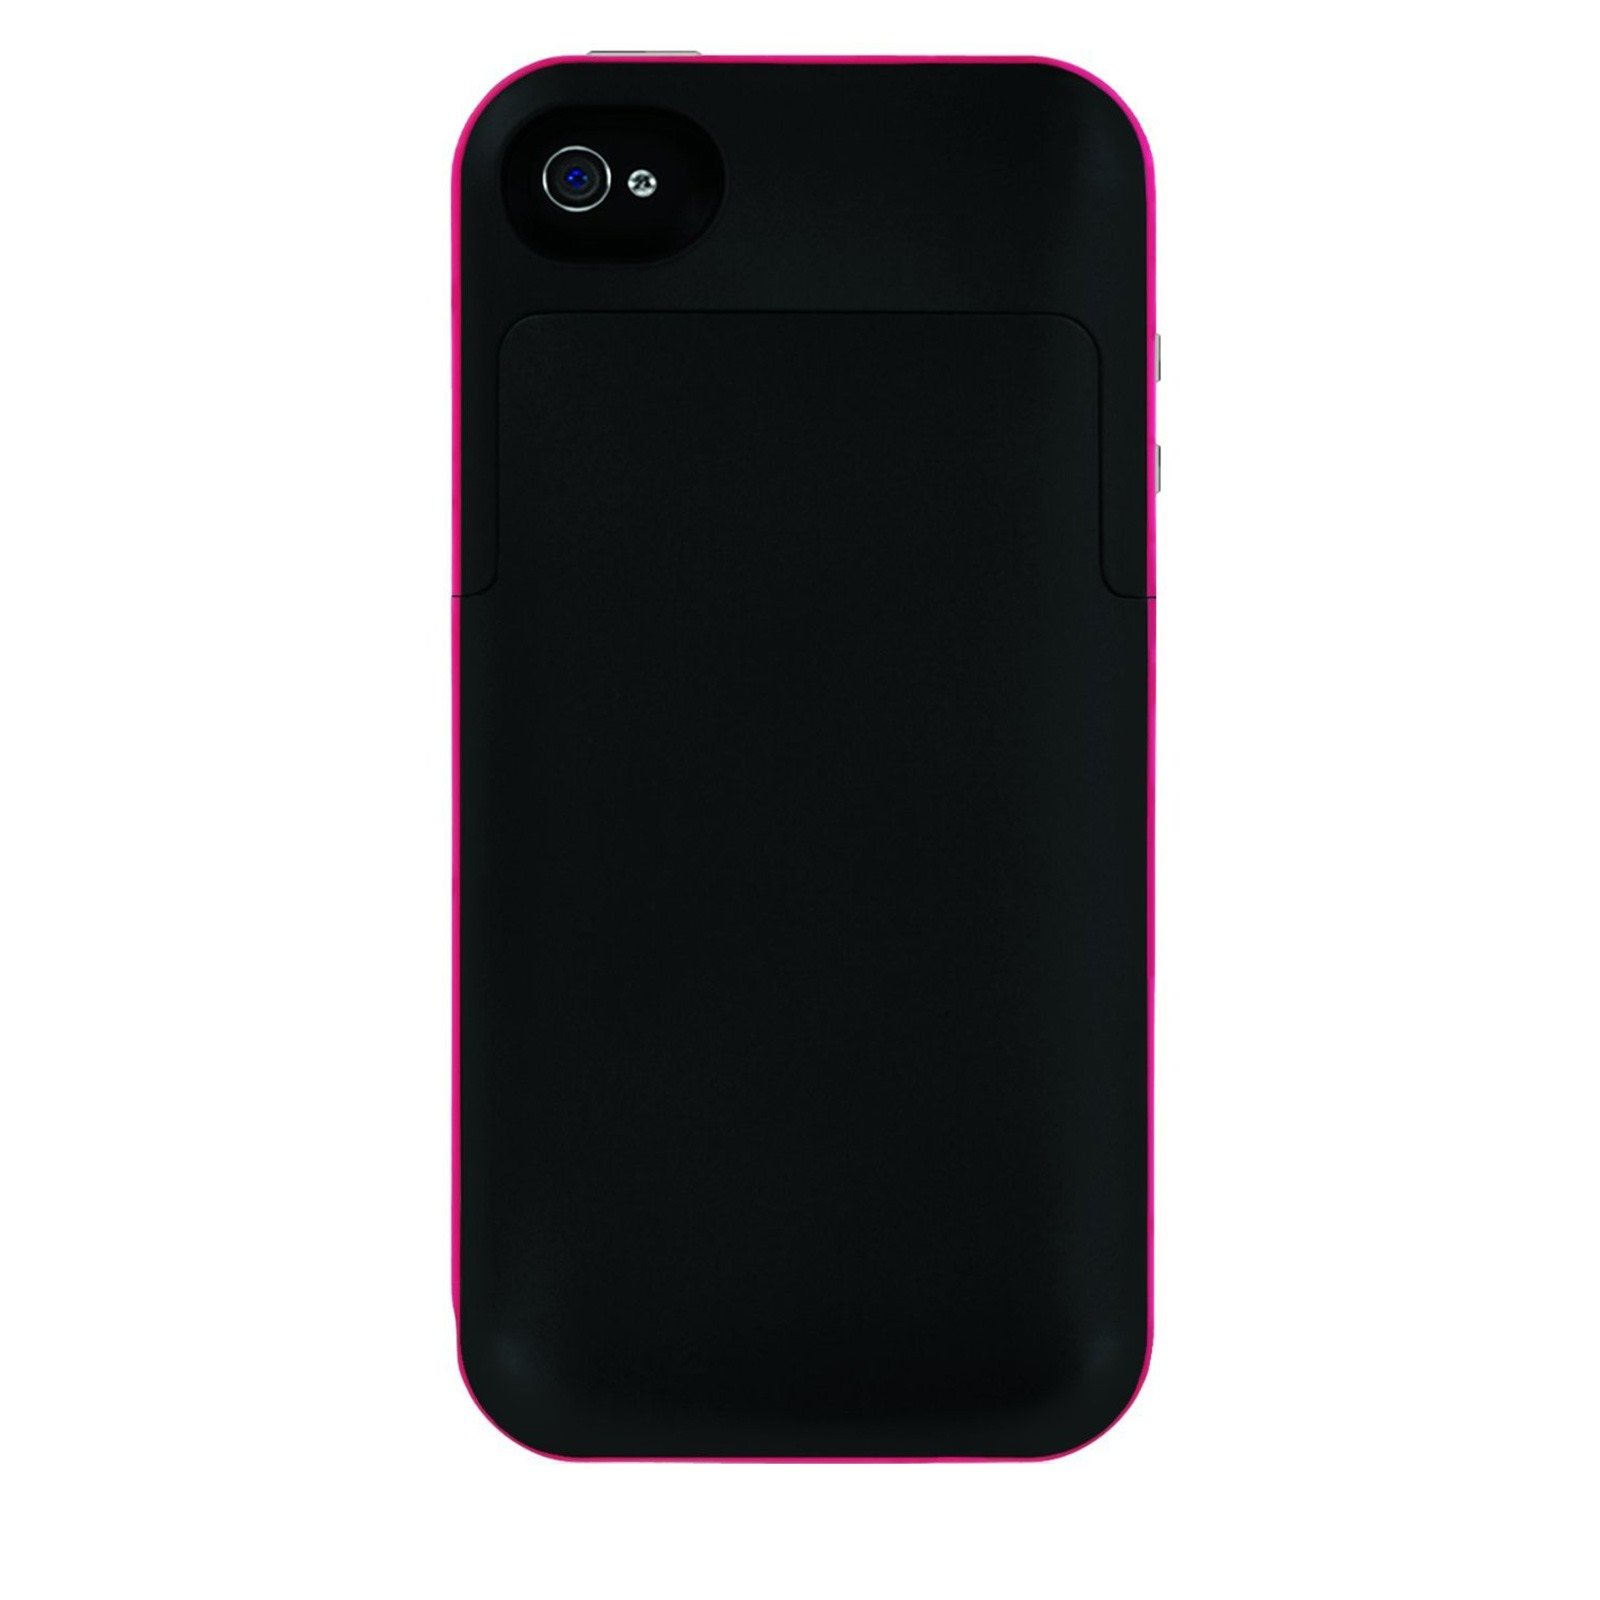 mophie juice pack iphone 4s instructions